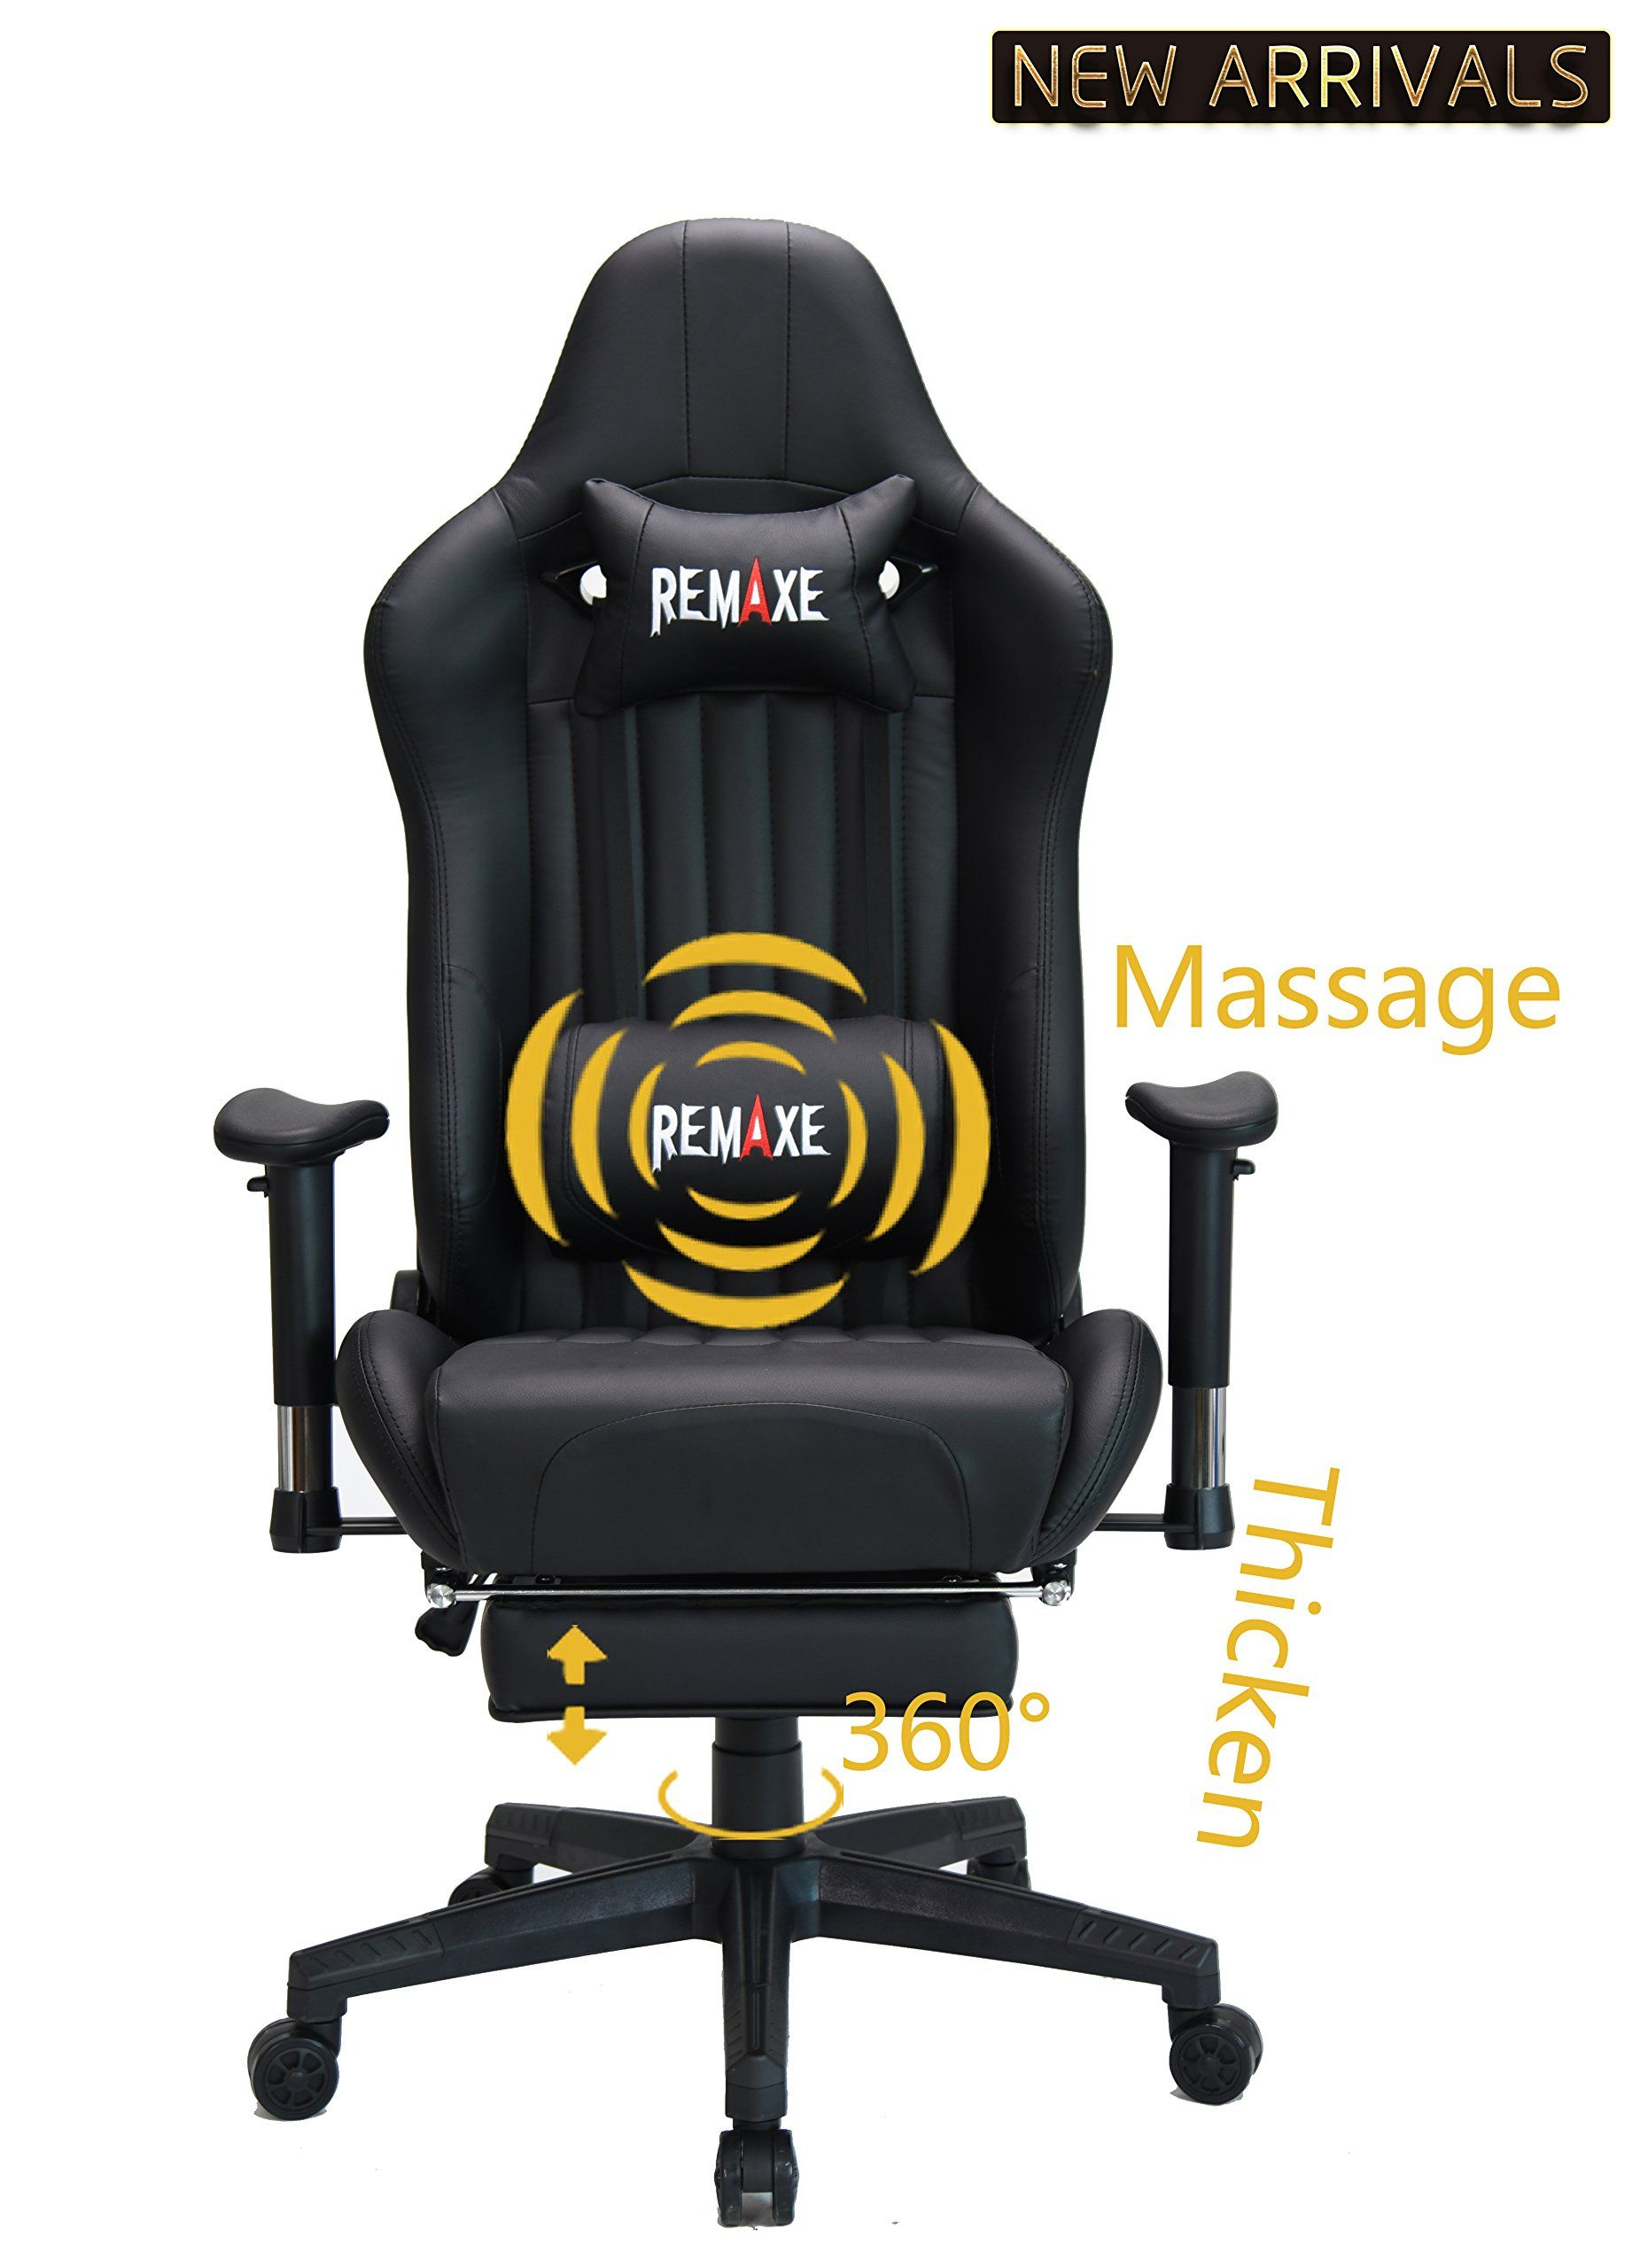 Terrific Large Size Computer Gaming Chair Ergomonic Racing Chair With Squirreltailoven Fun Painted Chair Ideas Images Squirreltailovenorg